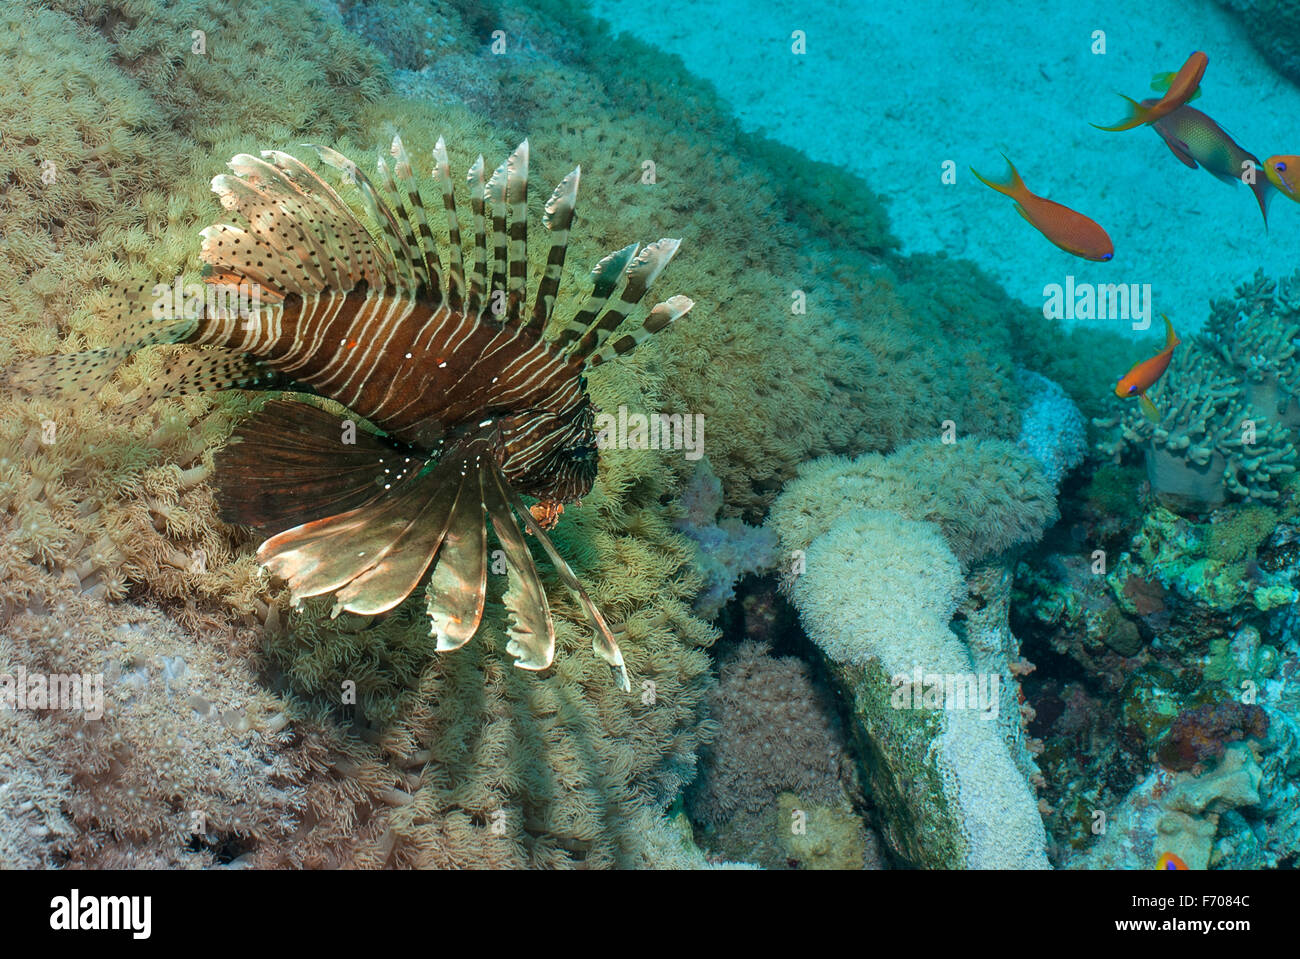 Lionfish, Pterois miles, Scopenidae,  Sharm el Sheikh, Red Sea, Egypt reef fish fishes Roberto Nistri underwater - Stock Image